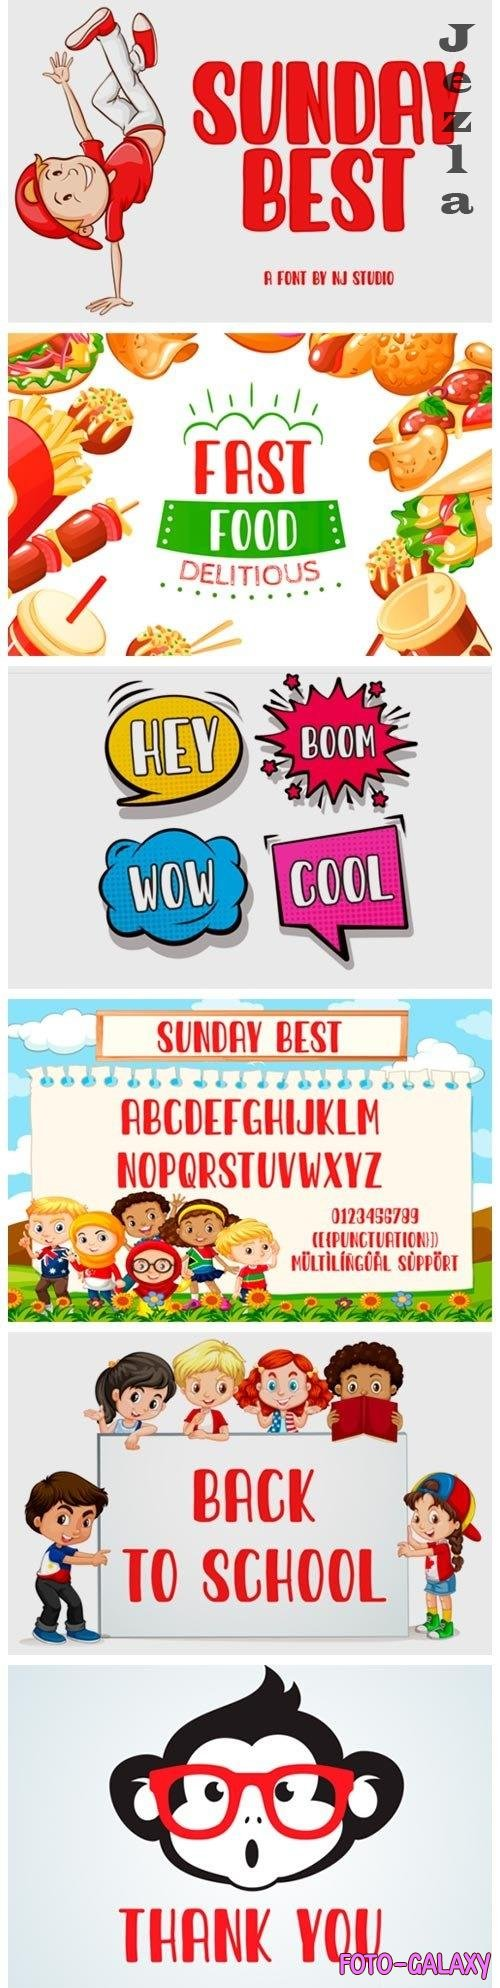 Sunday Best Font